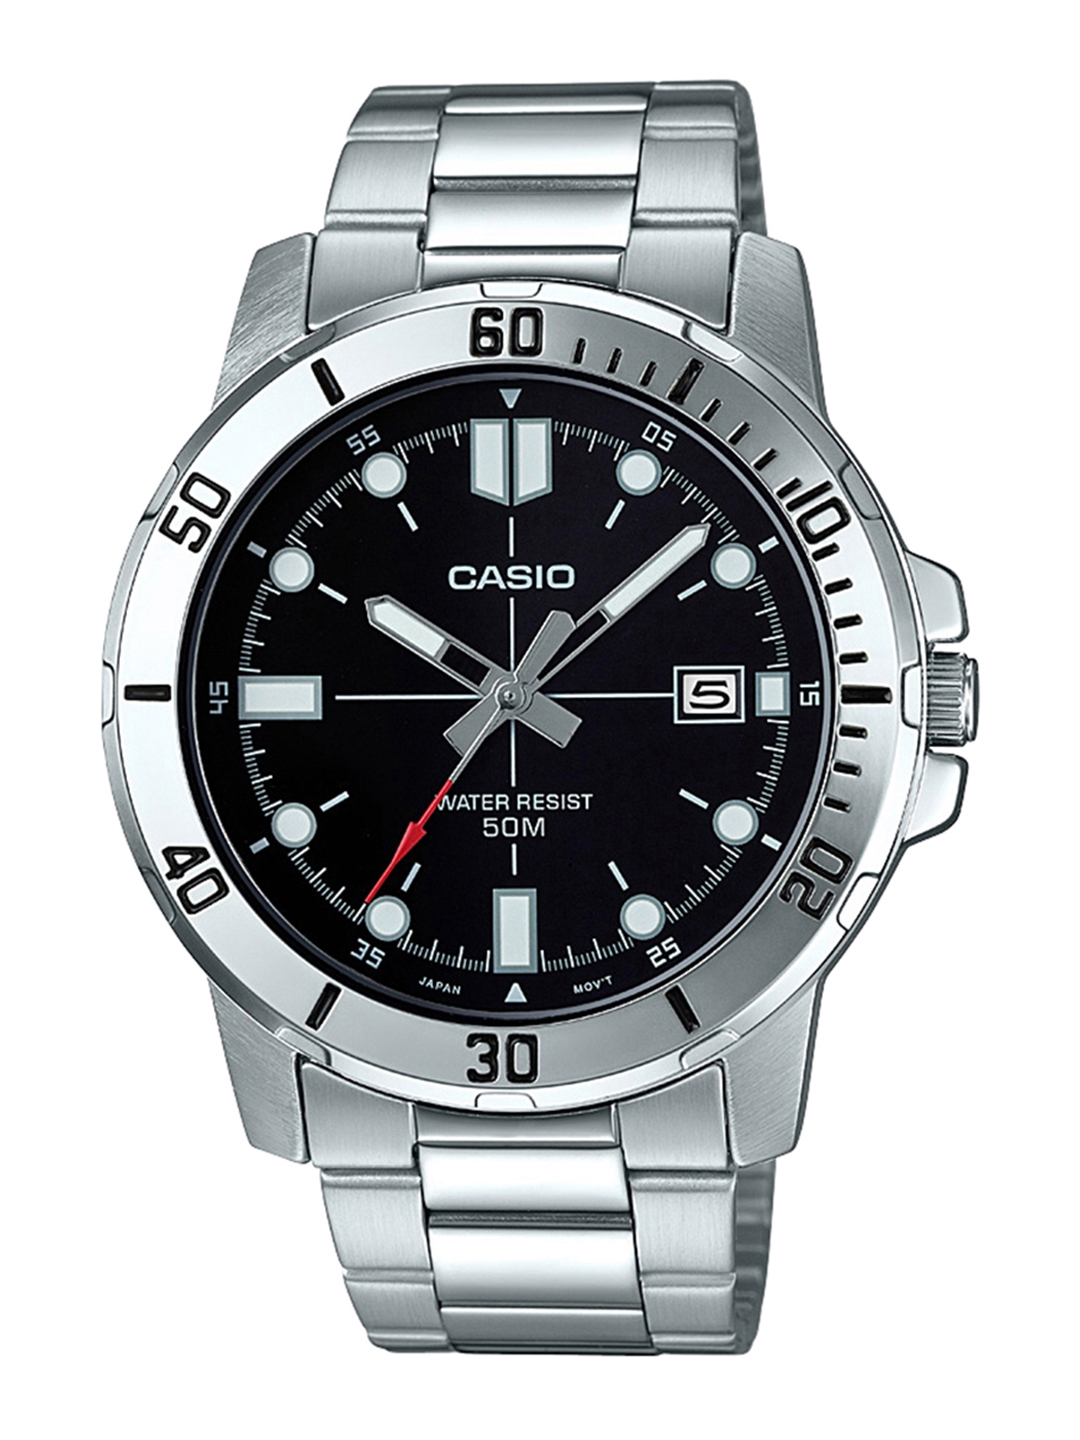 CASIO Enticer Men Black Dial Analog Watch MTP VD01D 1EVUDF   A1362